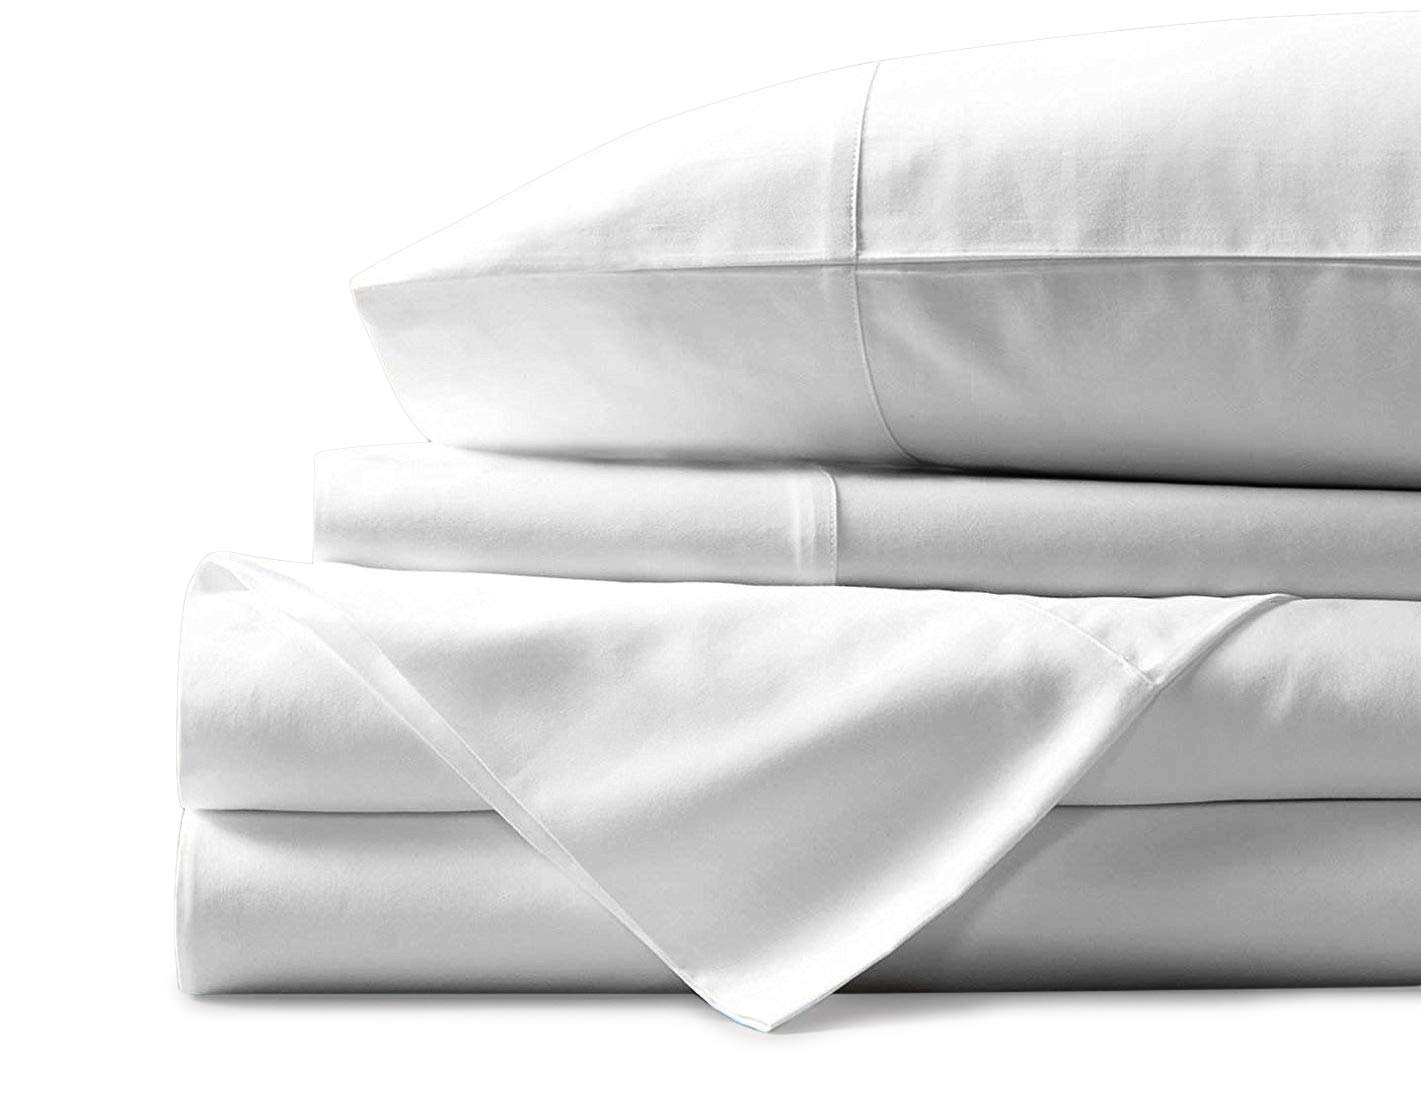 500 Thread Count 100% Cotton Sheet White Full Sheets Set, 4-Piece Long-staple Combed Pure Cotton Best Sheets For Bed, Breathable, Soft & Silky Sateen Weave Fits Mattress Upto 18'' Deep Pocket